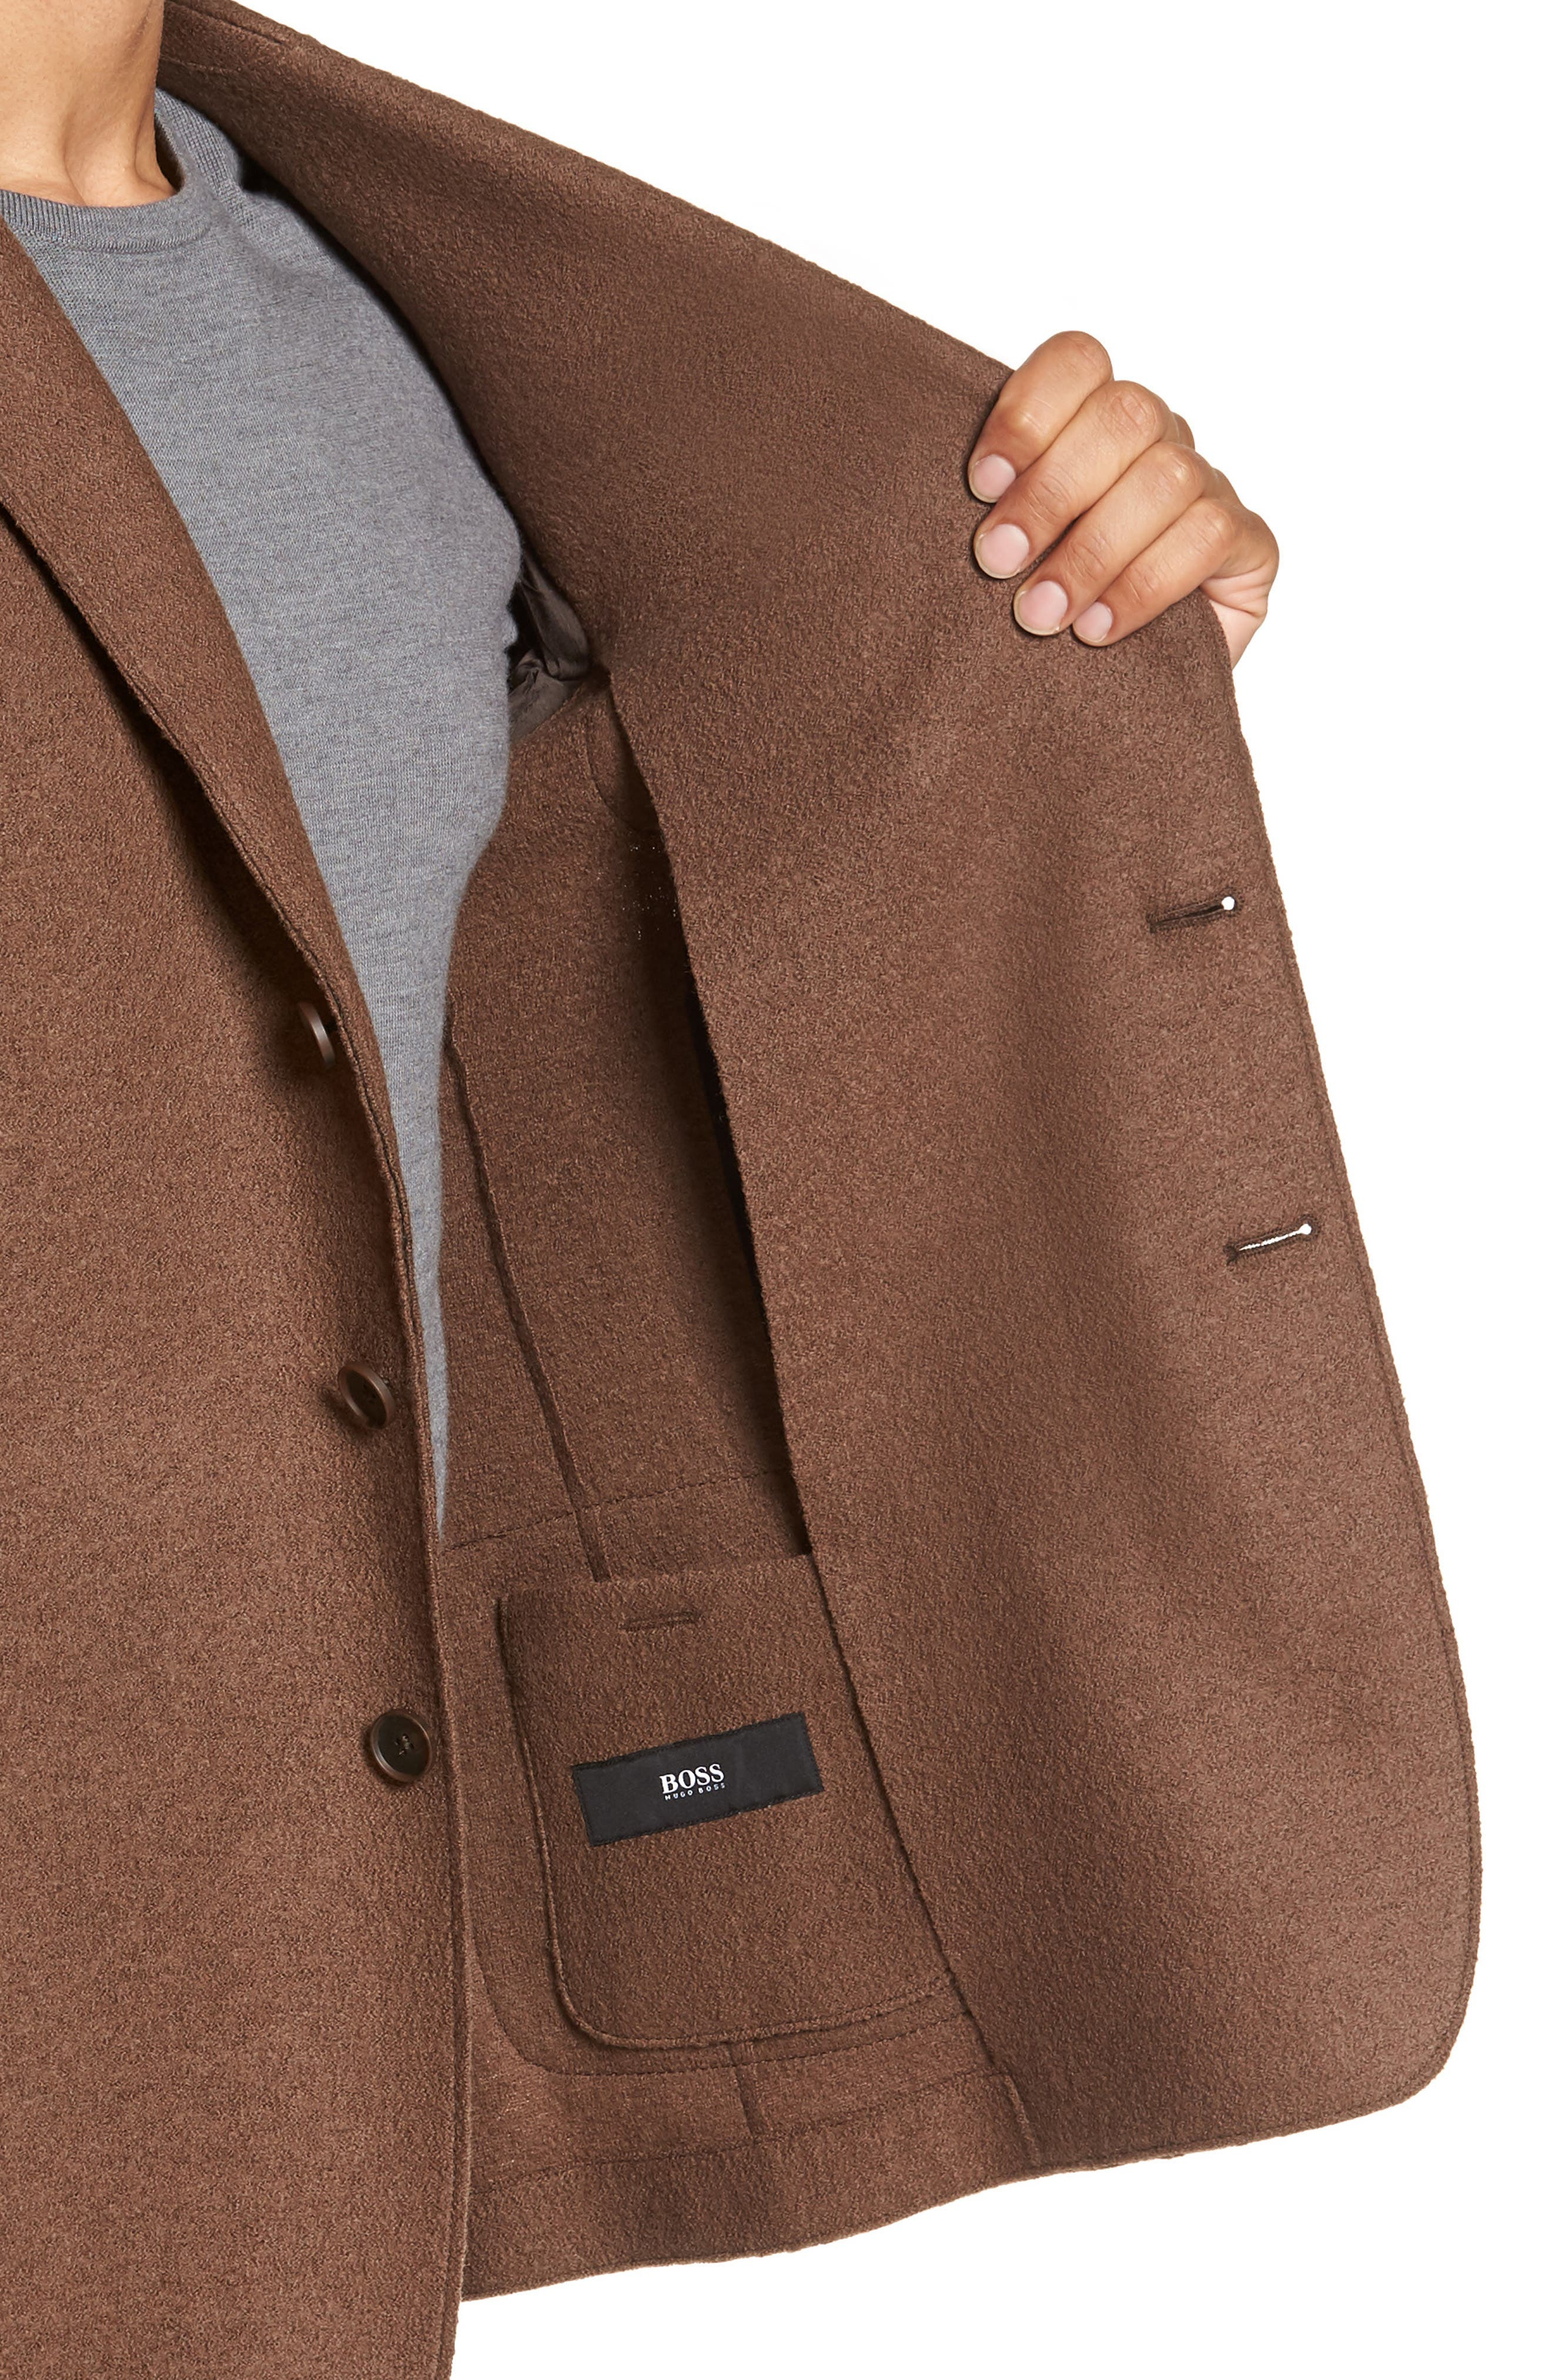 Nixan Trim Fit Wool Sport Coat,                             Alternate thumbnail 4, color,                             LIGHT/ PASTEL BROWN